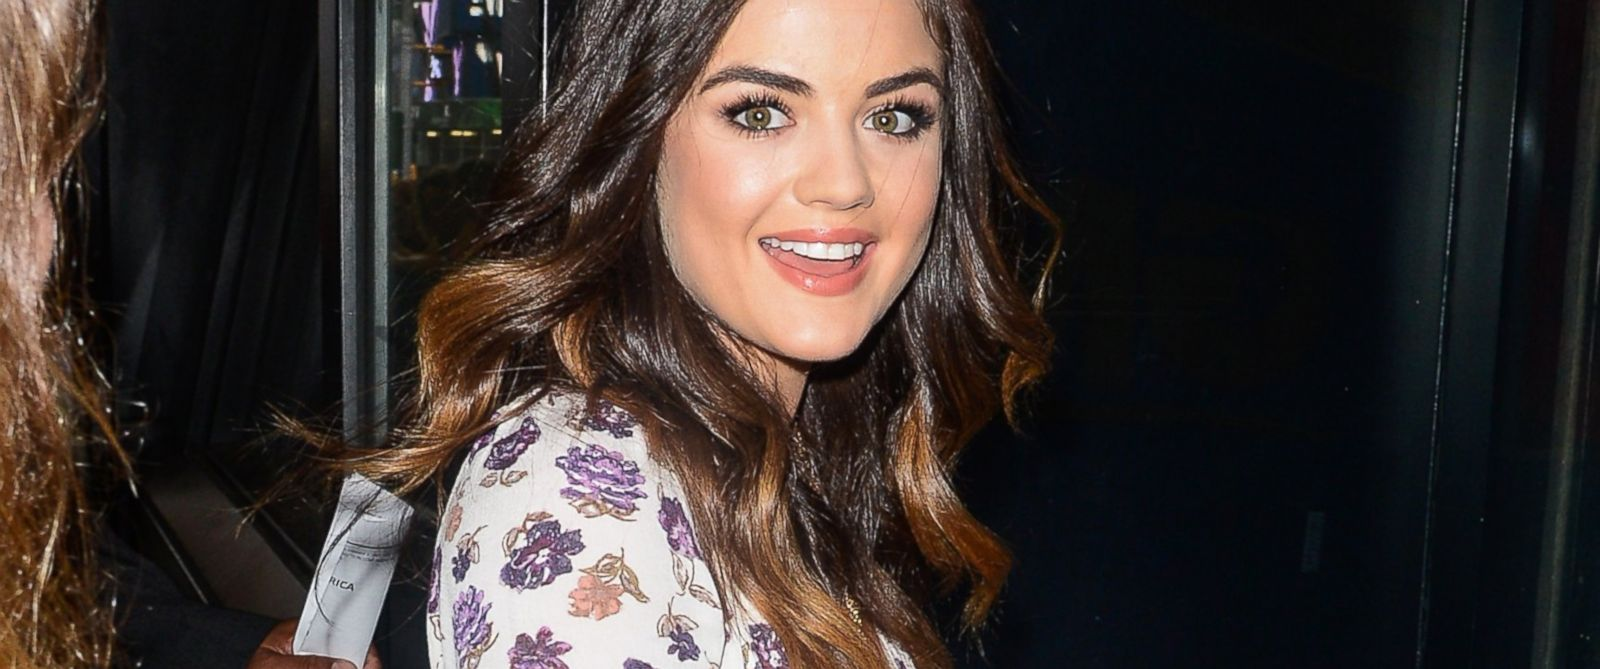 """PHOTO: Actress and singer Lucy Hale enters the """"Good Morning America"""" taping at the ABC Times Square Studios on June 30, 2014 in New York City."""